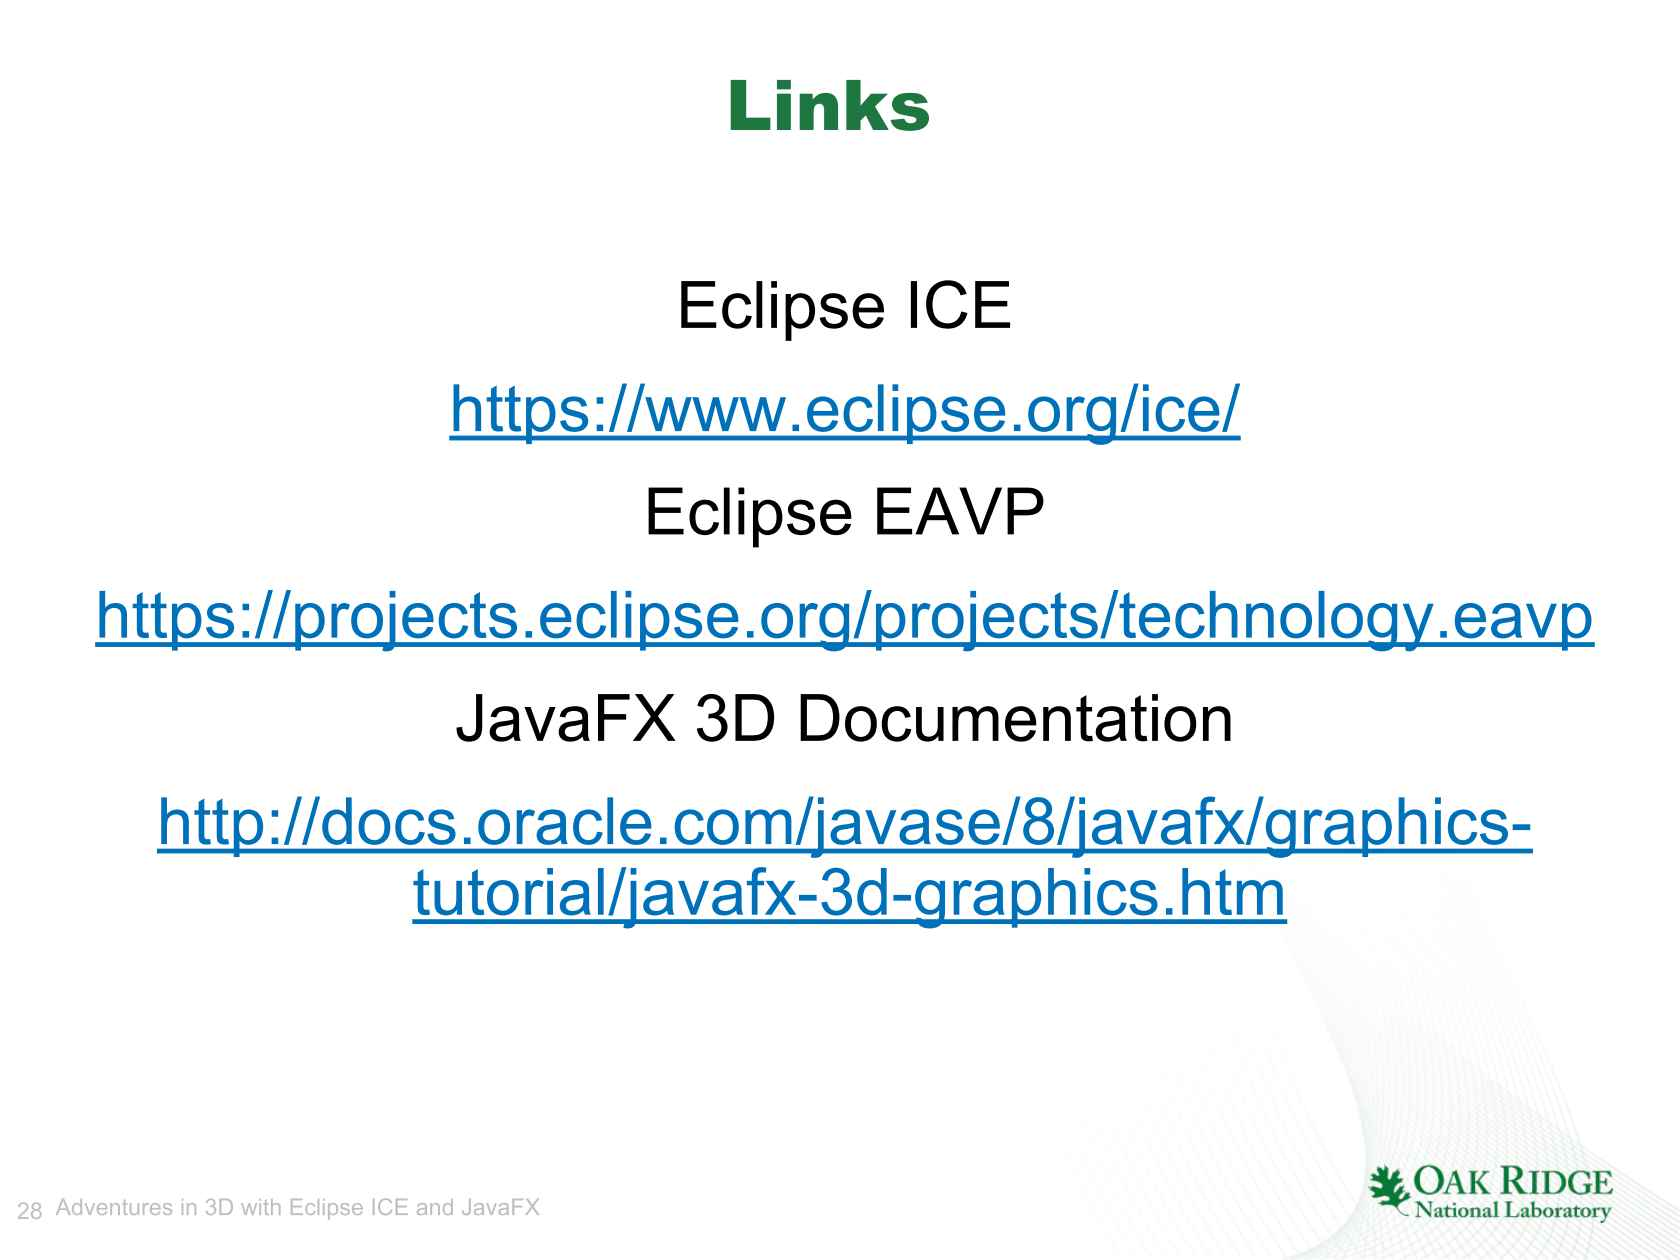 Adventures in 3D with Eclipse ICE and JavaFX